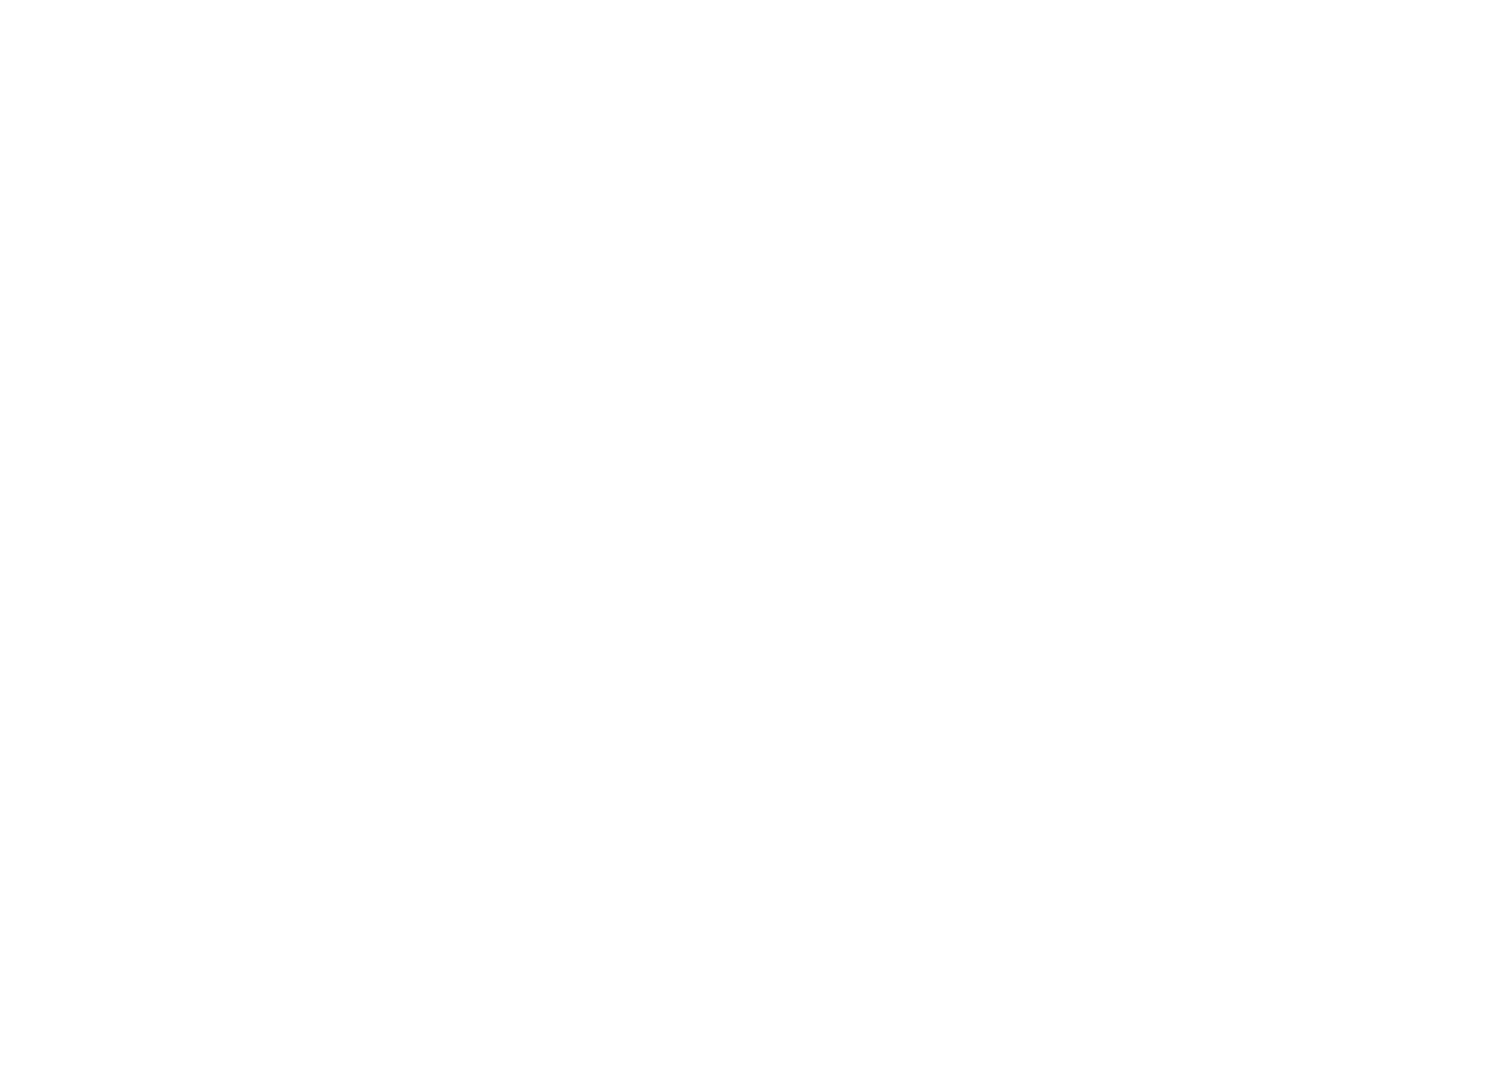 Maui Website Design & Marketing By Pueo Creations